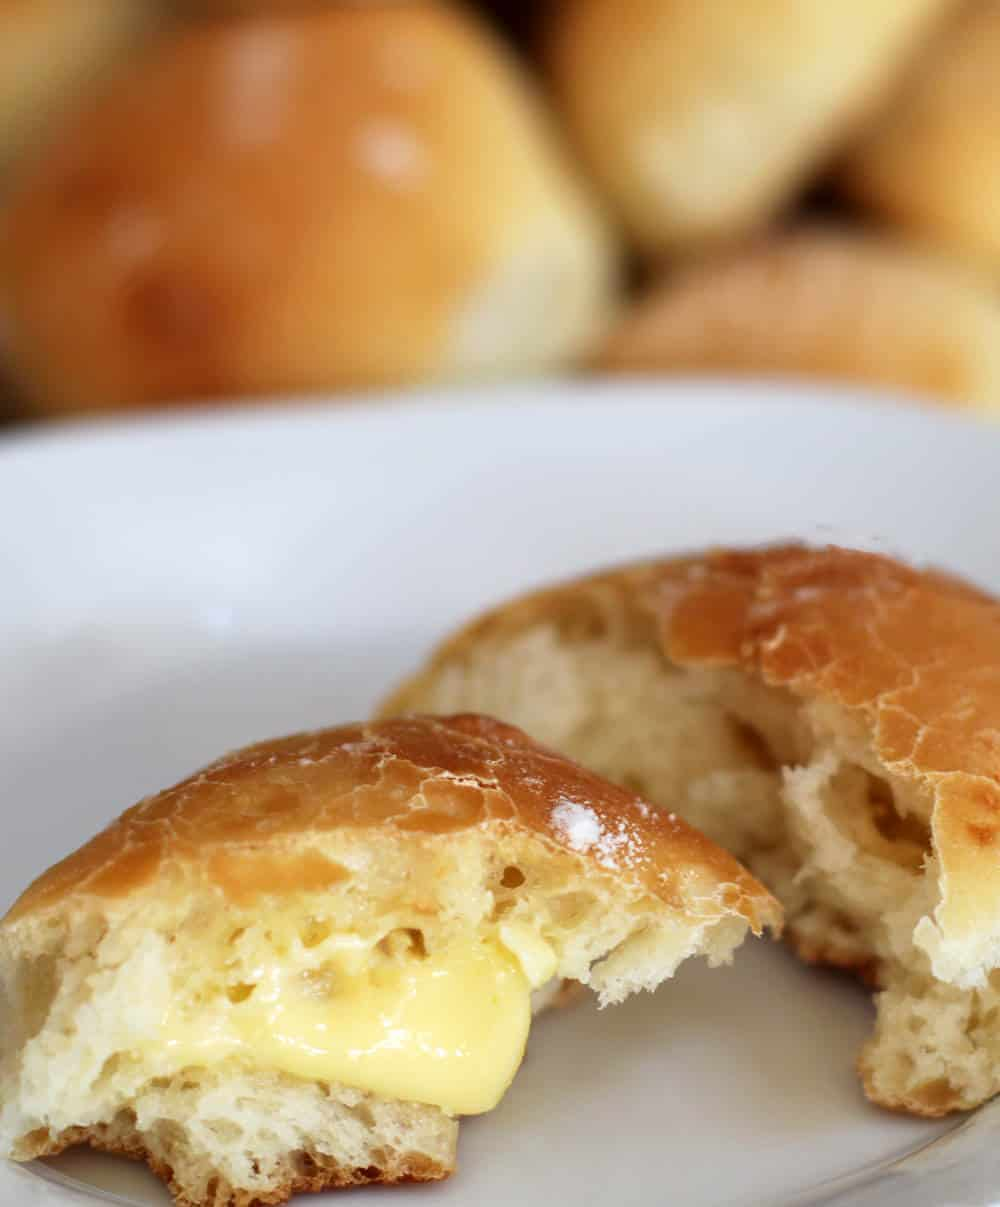 These dinner buns are perfect for holidays or any dinner. They are slightly crunchy on the outside and soft on the inside.